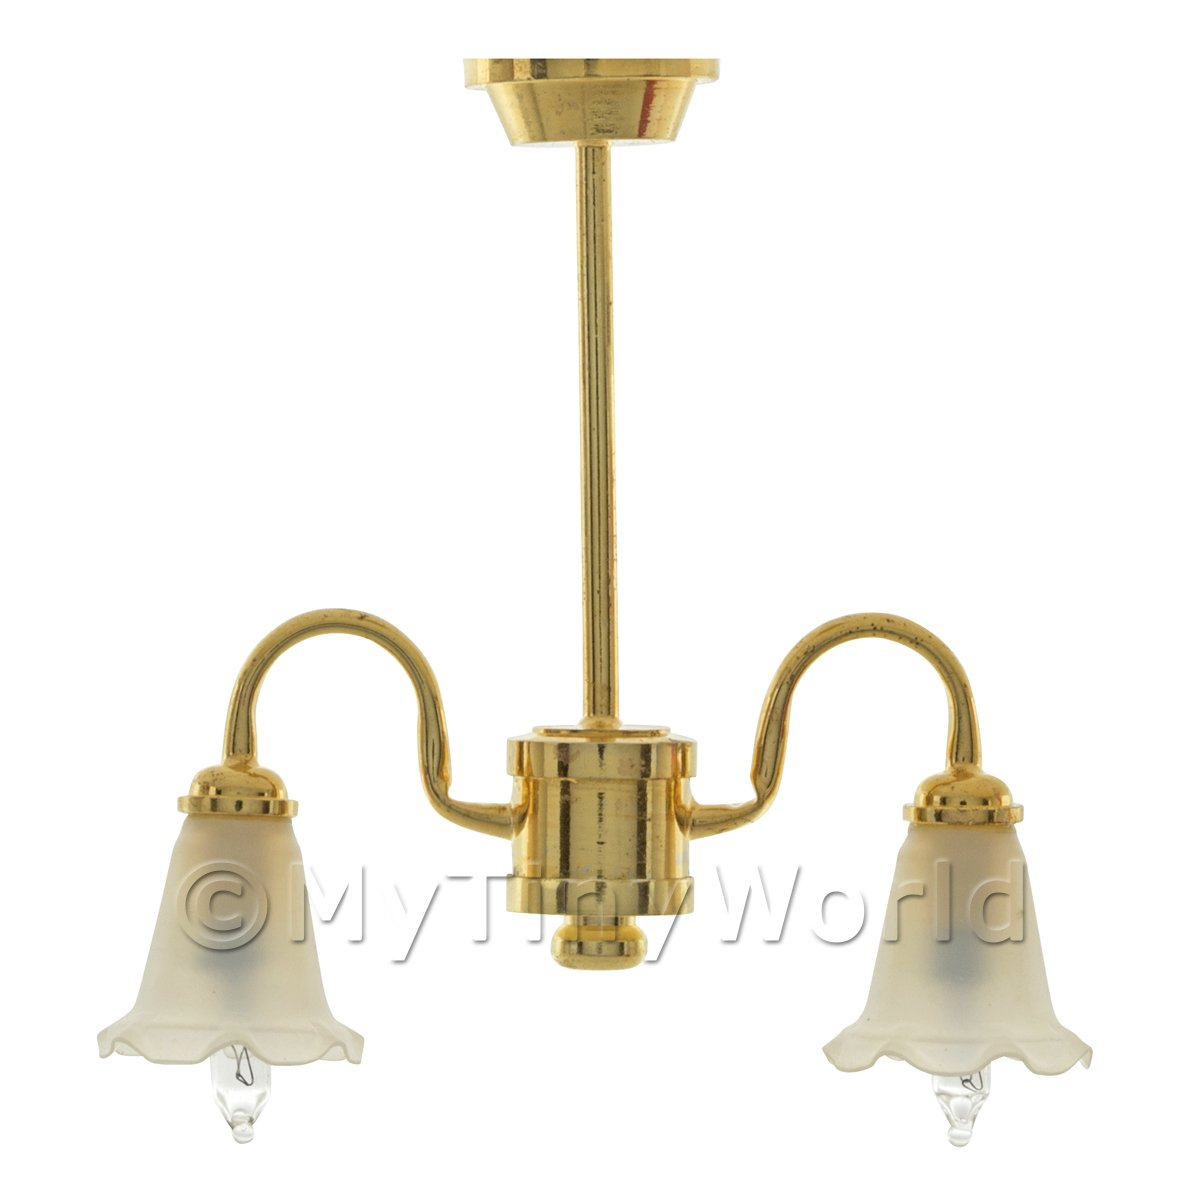 globe reproduction large chandeliers for image clear new brass hurricane miniature top globes chandelier prisma contemporary anti pendant and glass supreme fixtures light hover